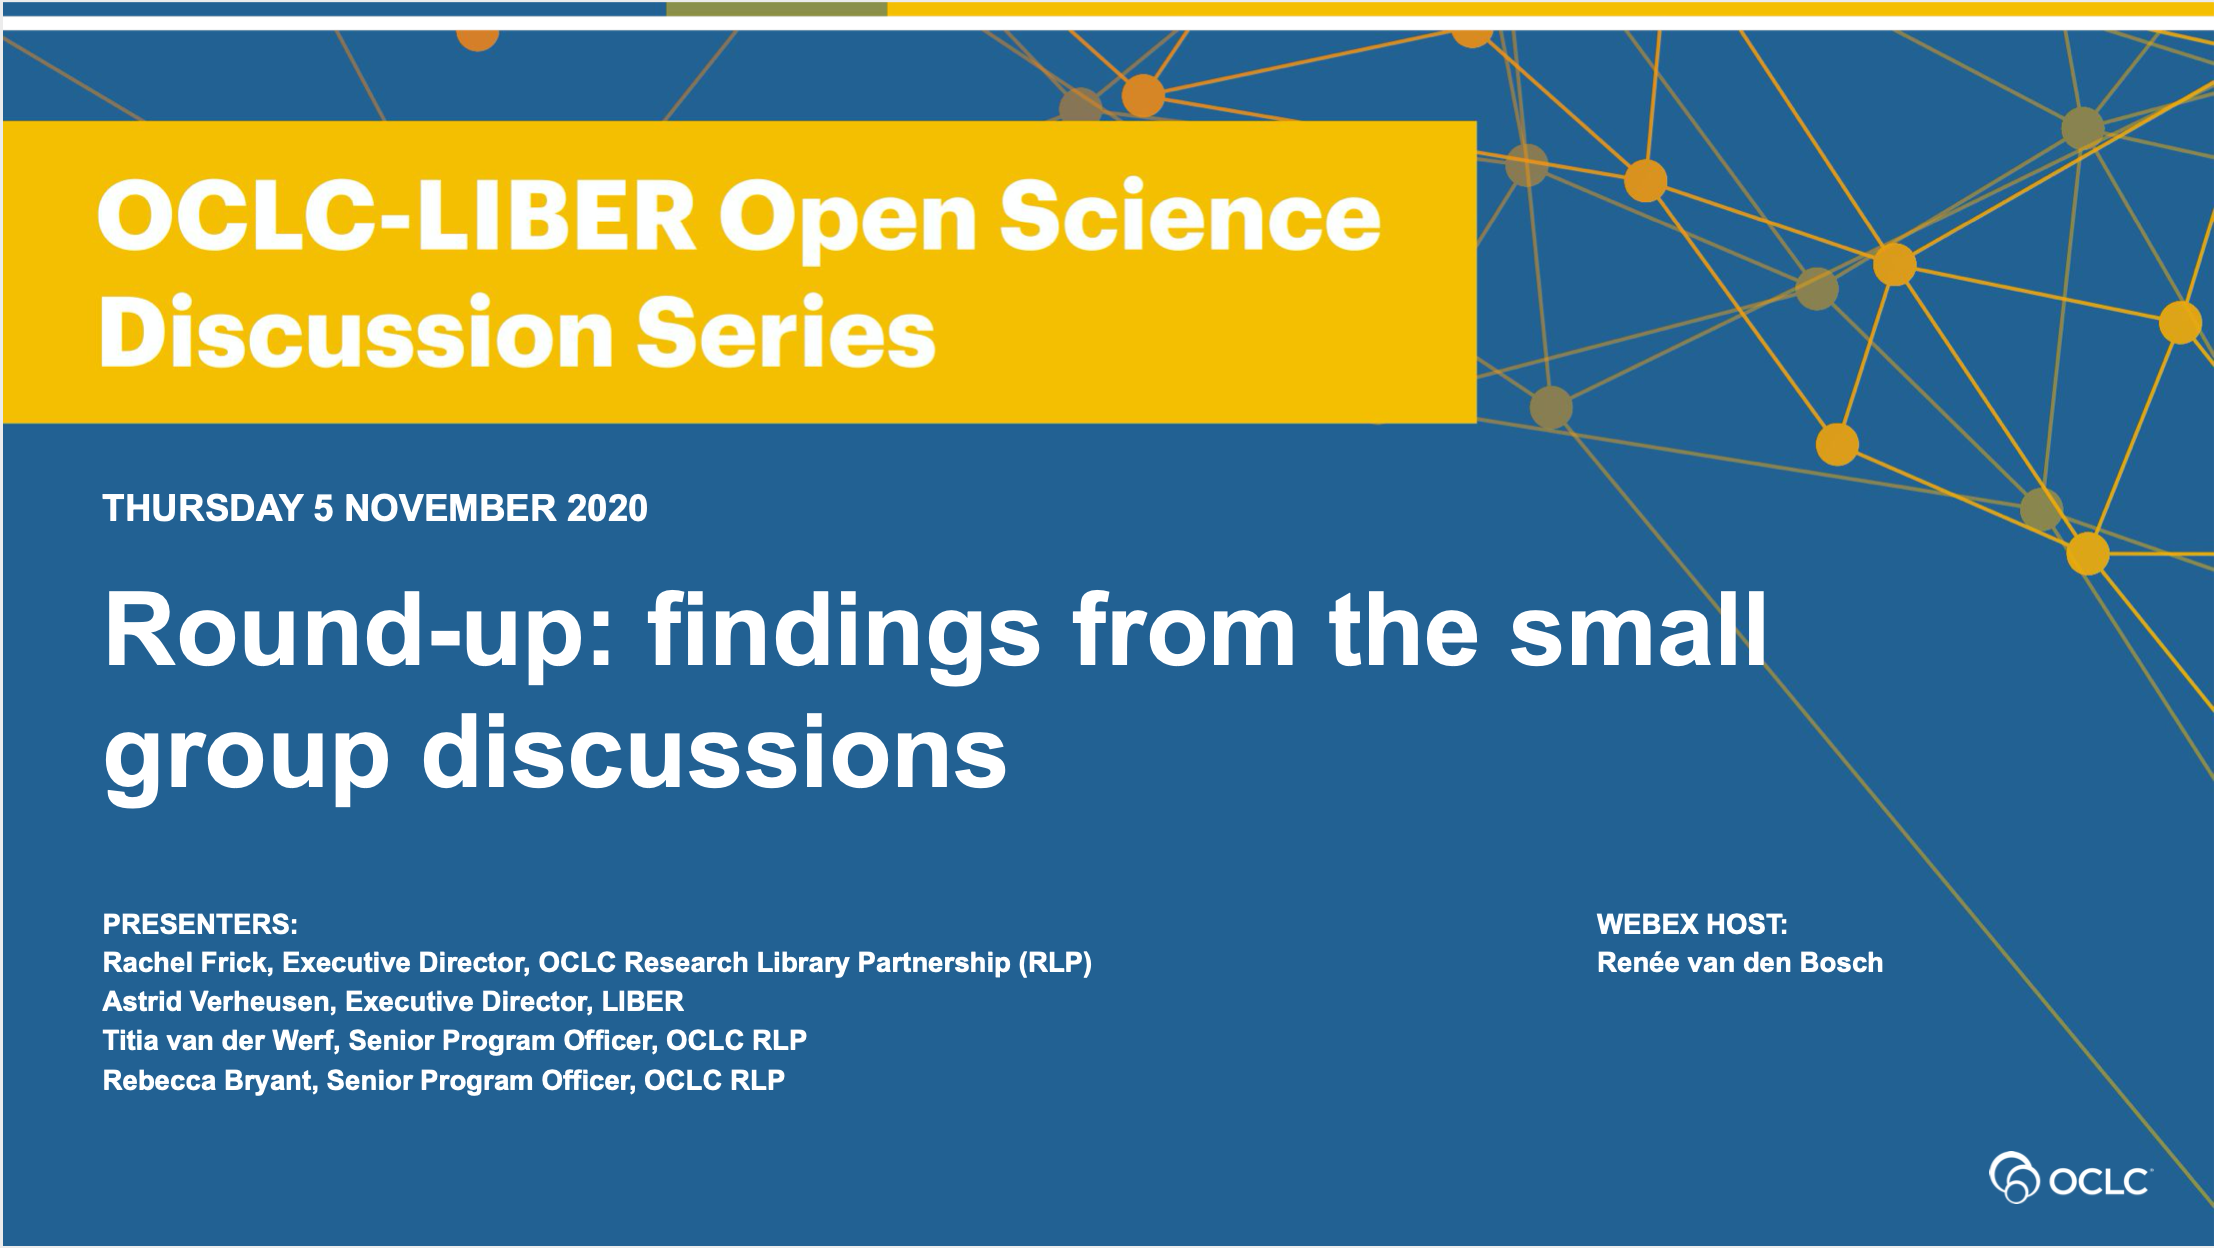 Round up, OCLC-LIBER Open Science Discussion Series